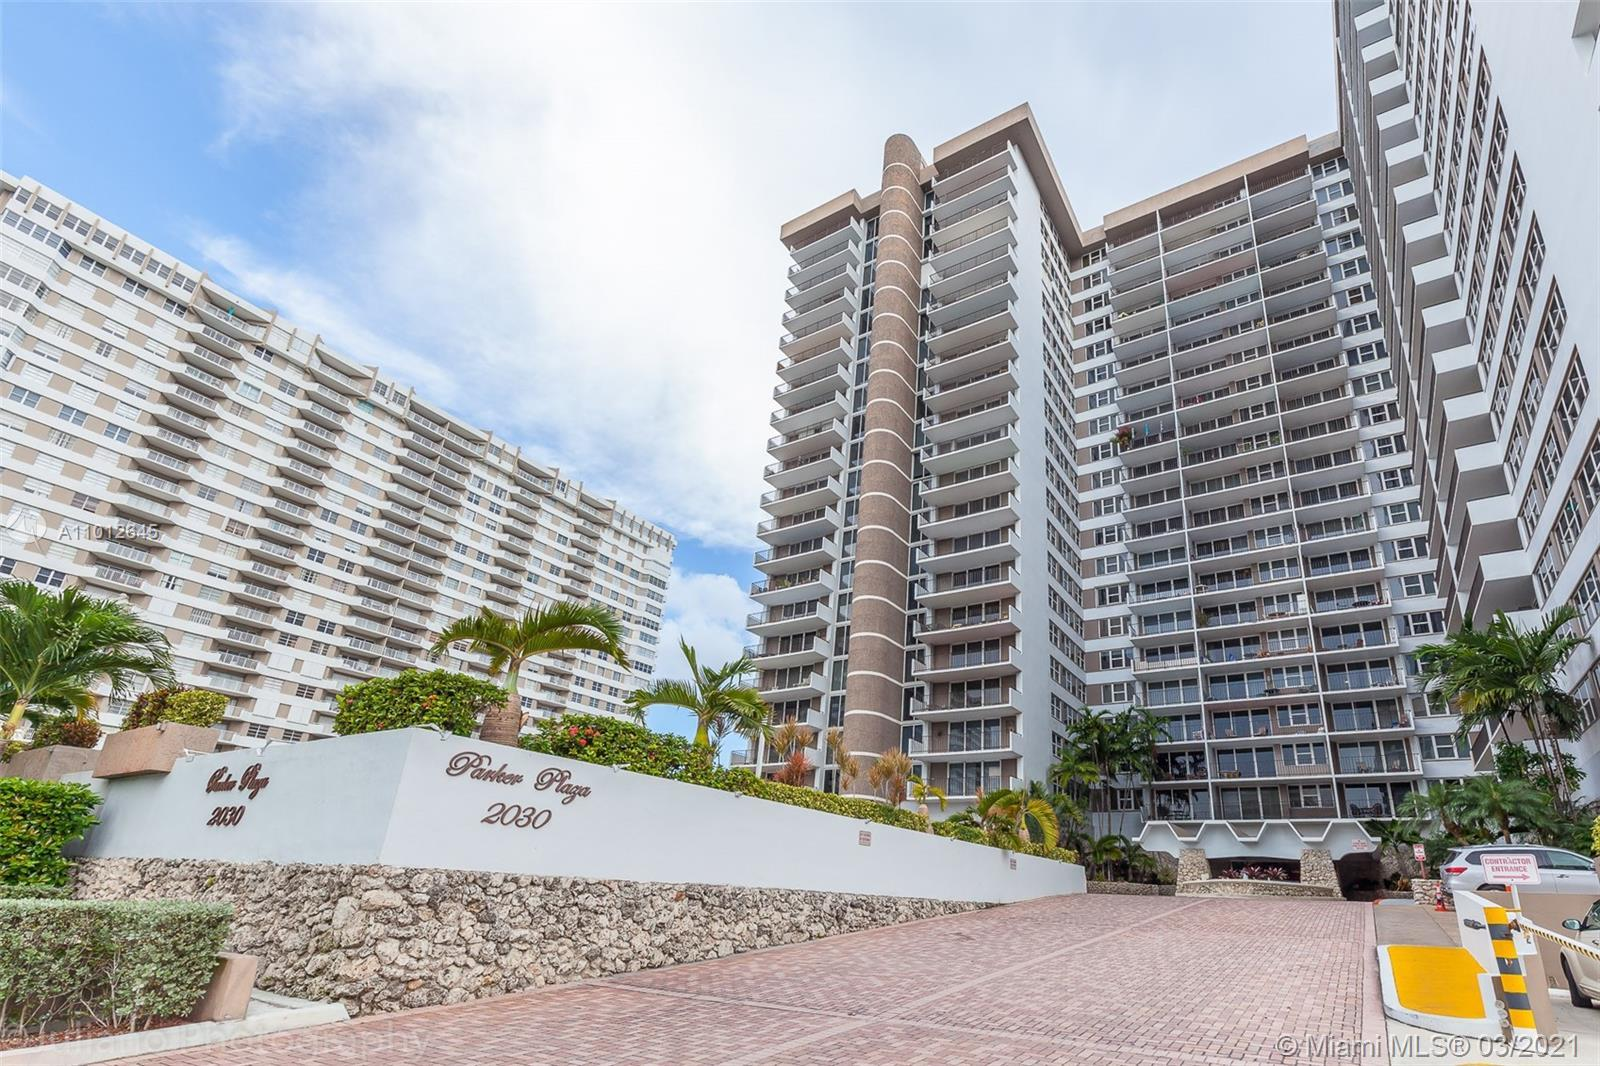 FANTASTIC OPPORTUNITY TO OWN THIS SPACIOUS CONDO ON THE BEACH. INTRACOASTAL AND NW HORIZON VIEWS FRO